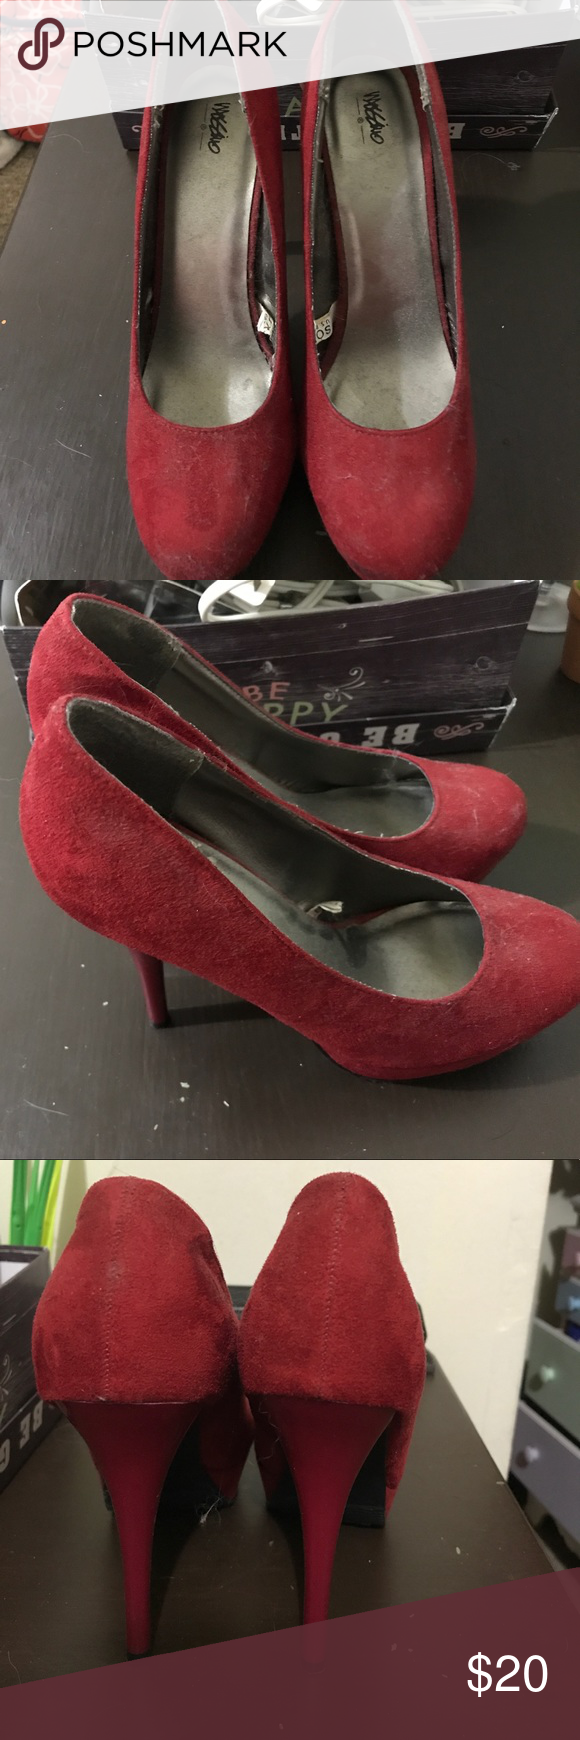 "5"" suede red Mossimo heels. 5"" suede red Mossimo stilettos, platform toe, rarely worn. Mossimo Supply Co. Shoes Heels"